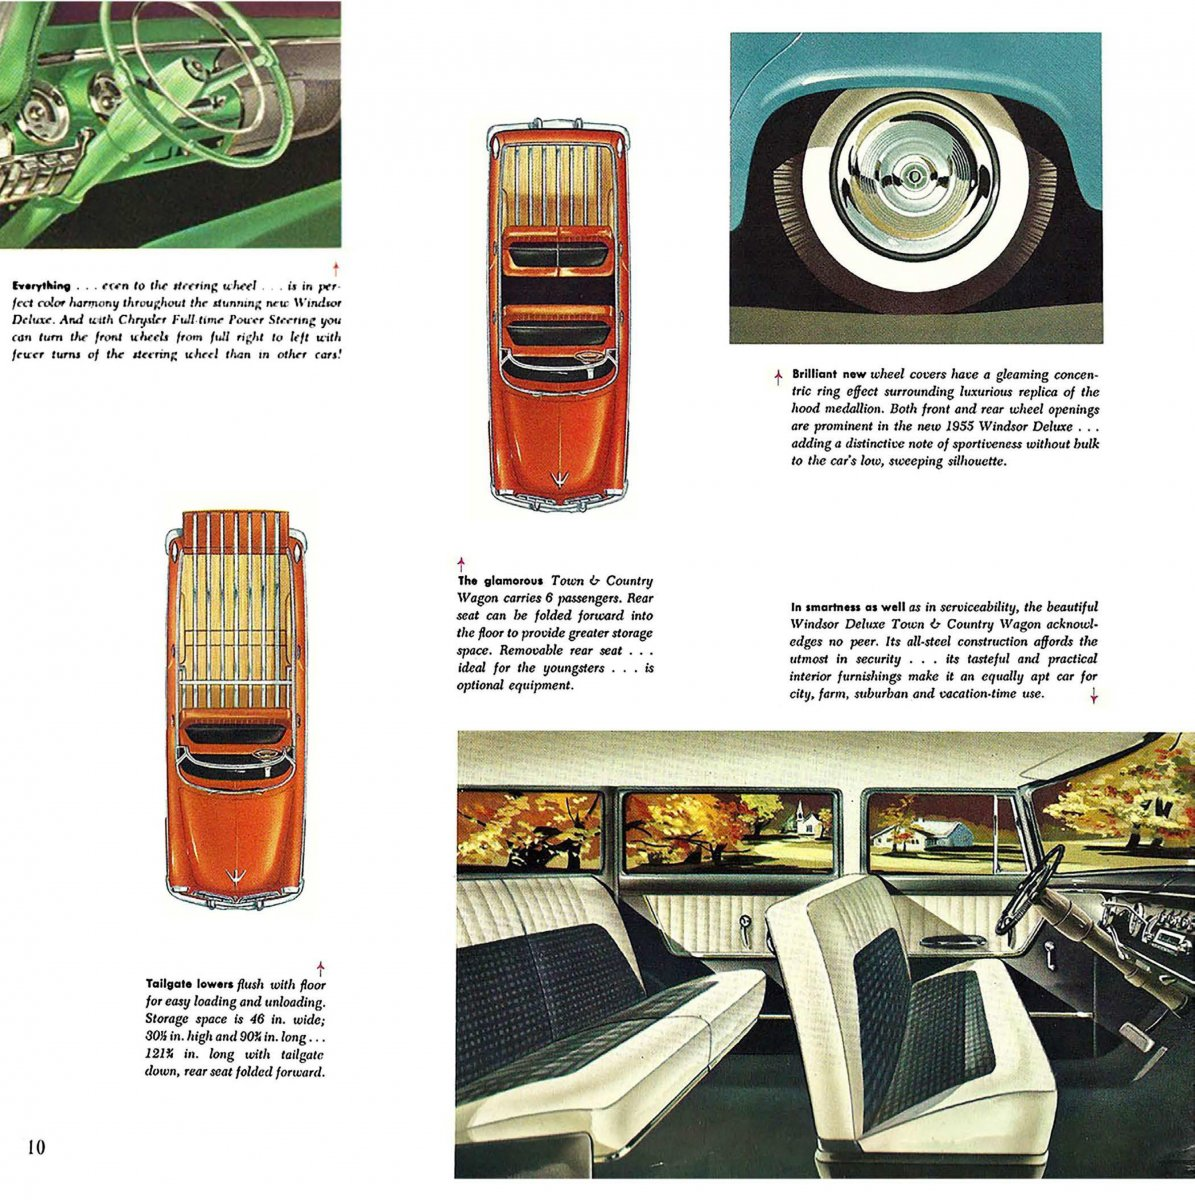 1955_Chrysler_Windsor_Brochure_1-16_10.jpg